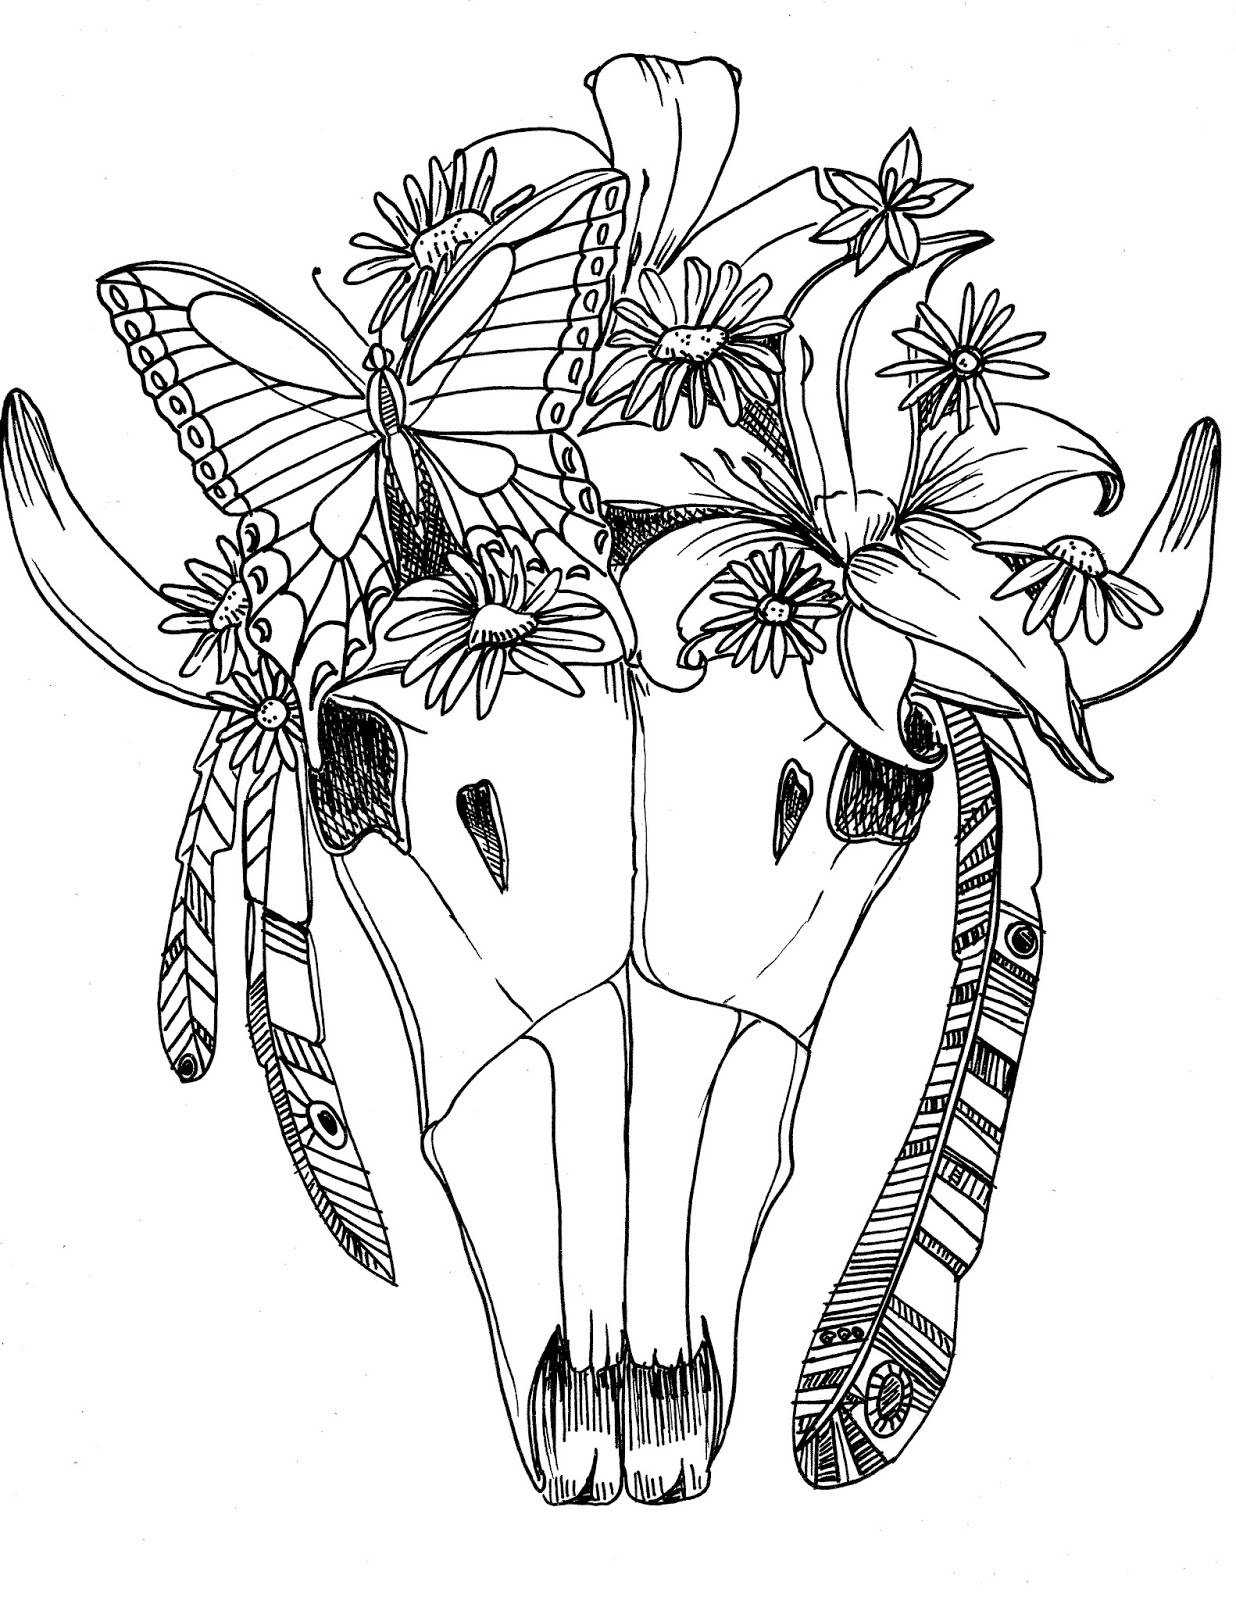 Texas longhorn skull coloring pages for Longhorn coloring page